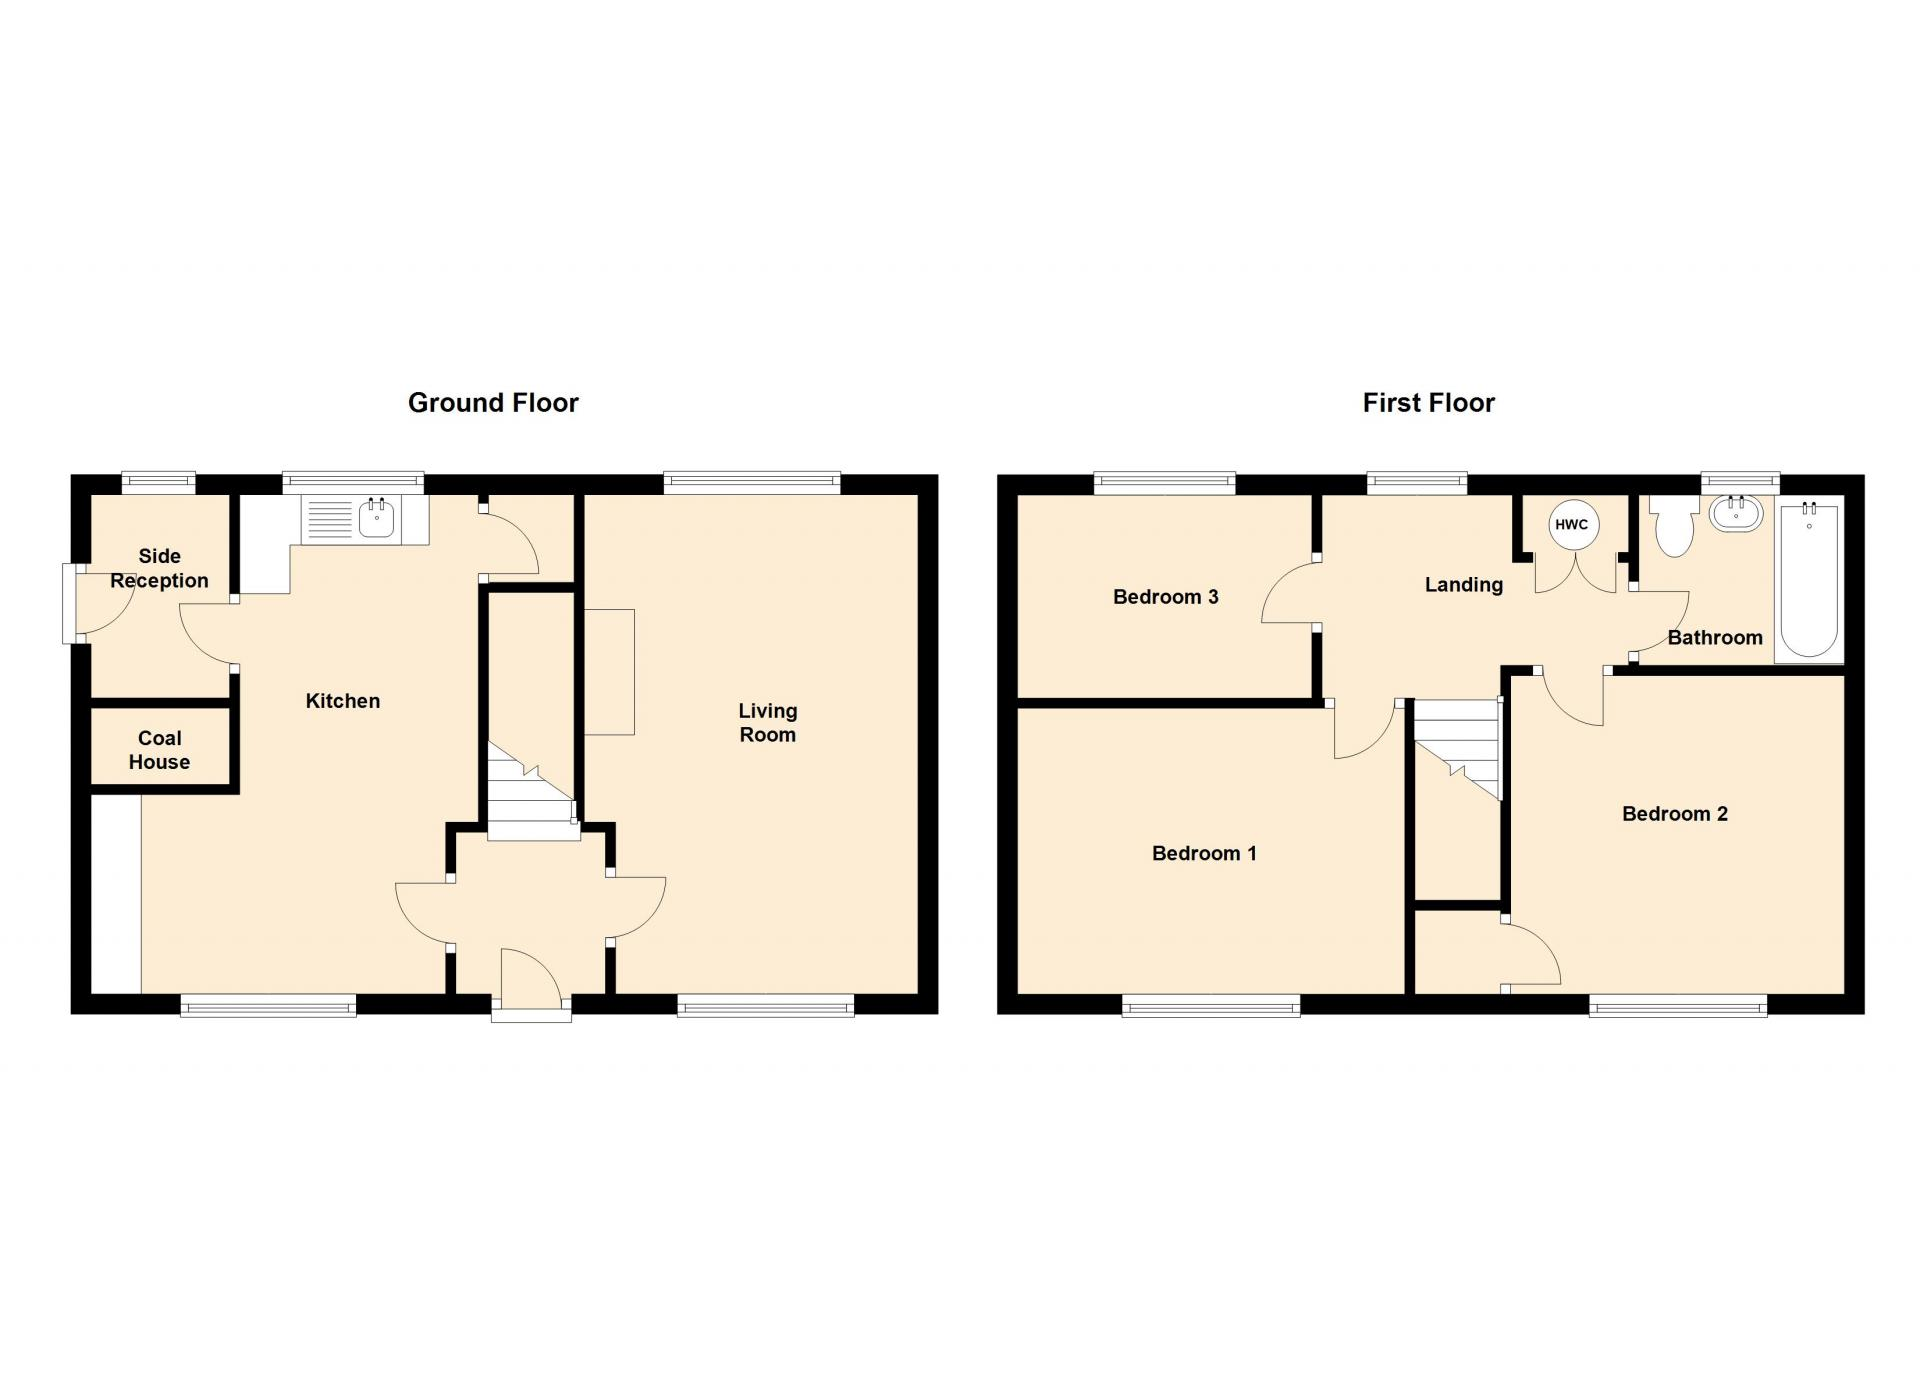 3 Bedroom House For Sale In Scunthorpe